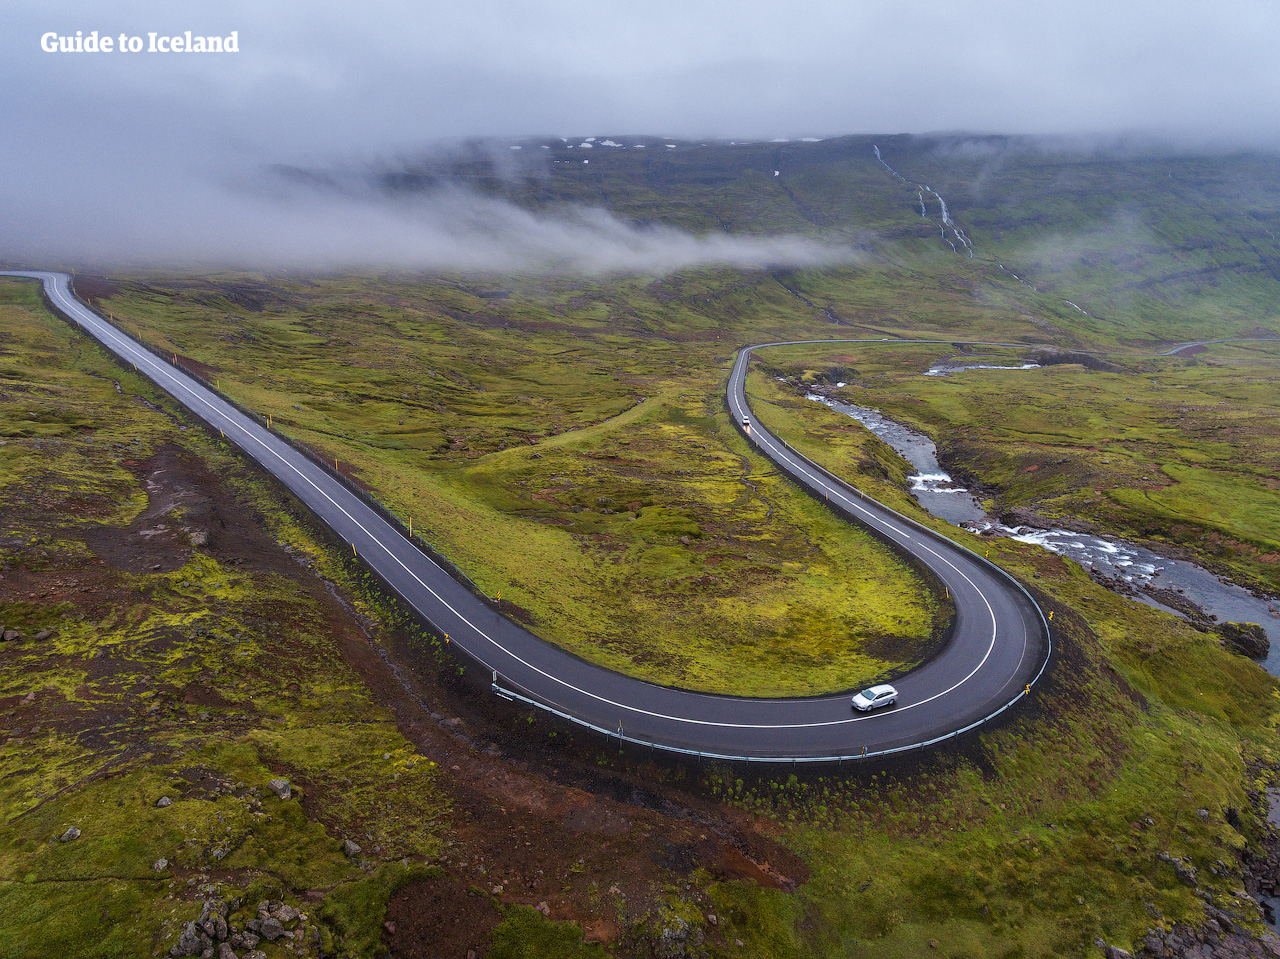 8 Day Summer Vacation Package with Guided Ring Road Tour of Iceland - day 5